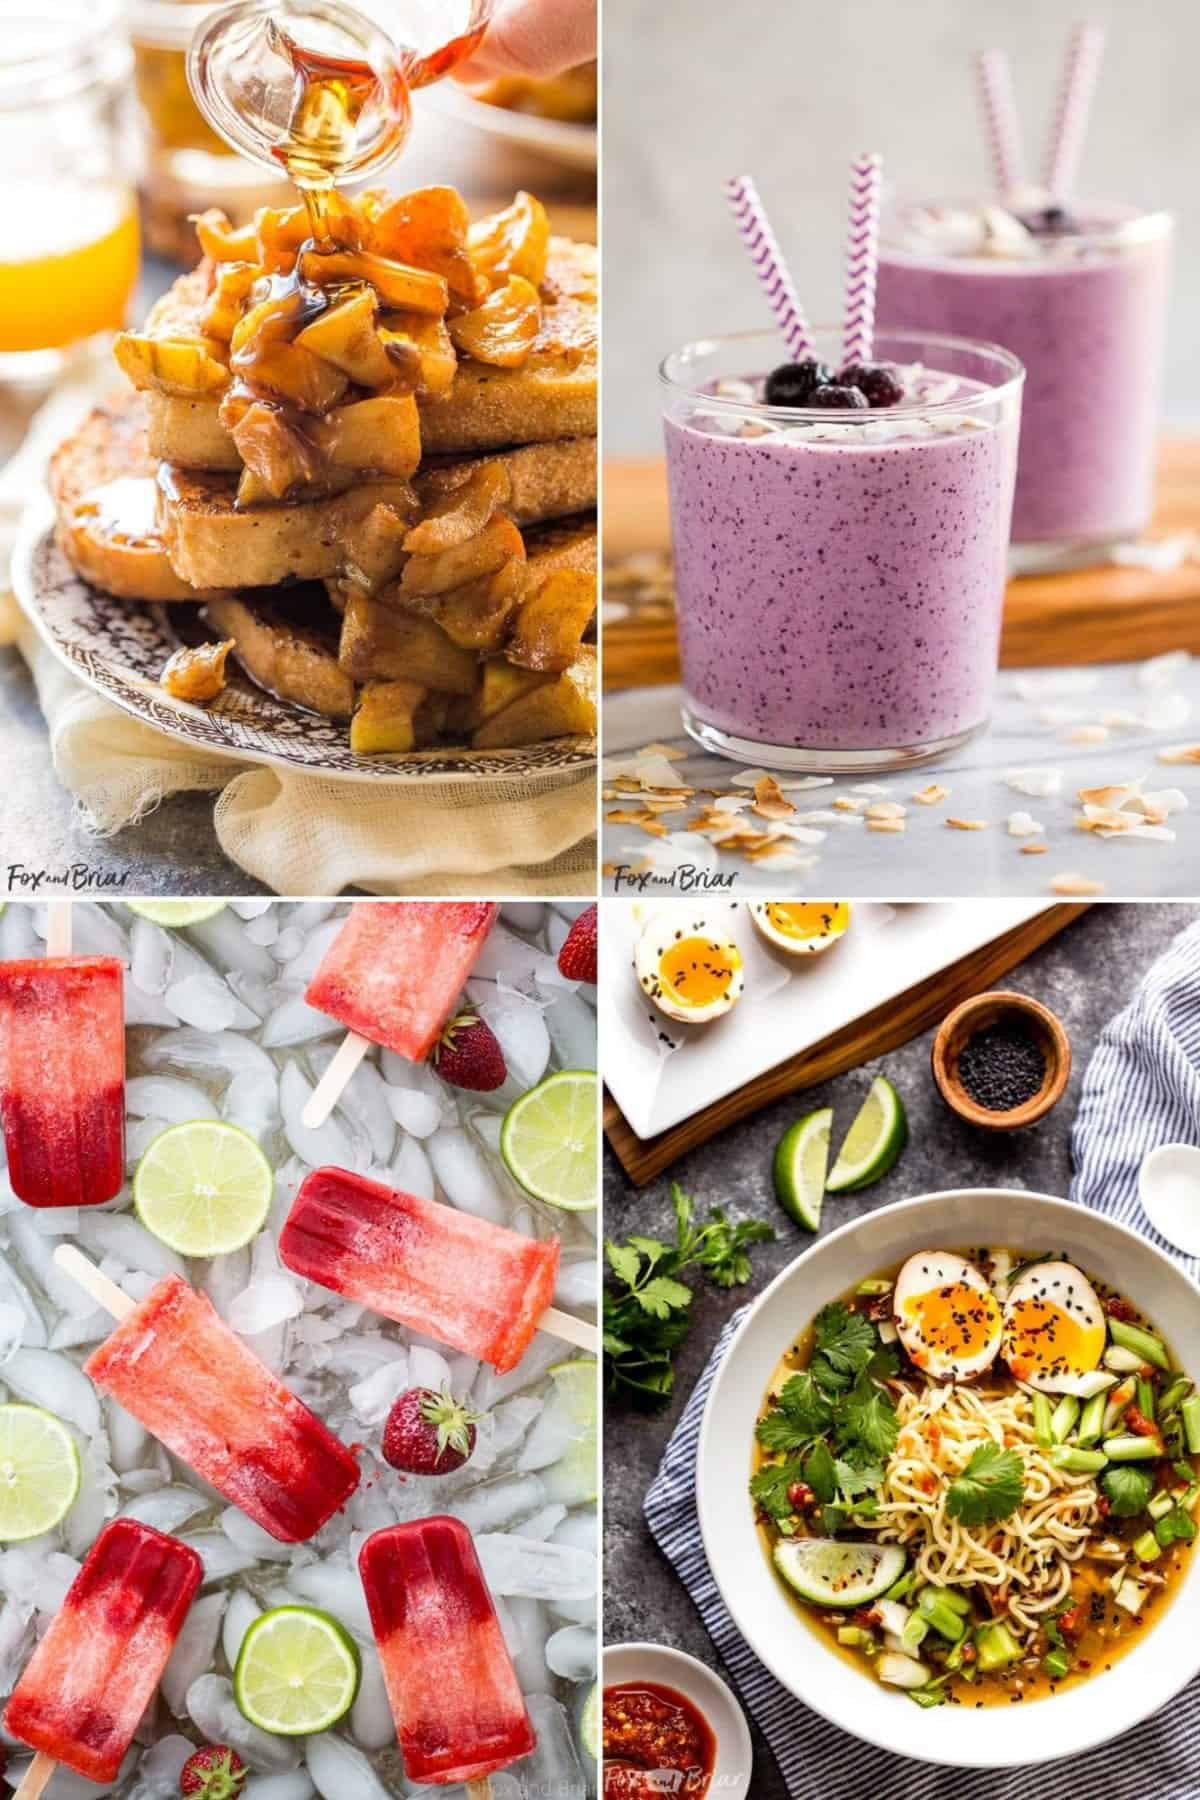 Collage of food images.